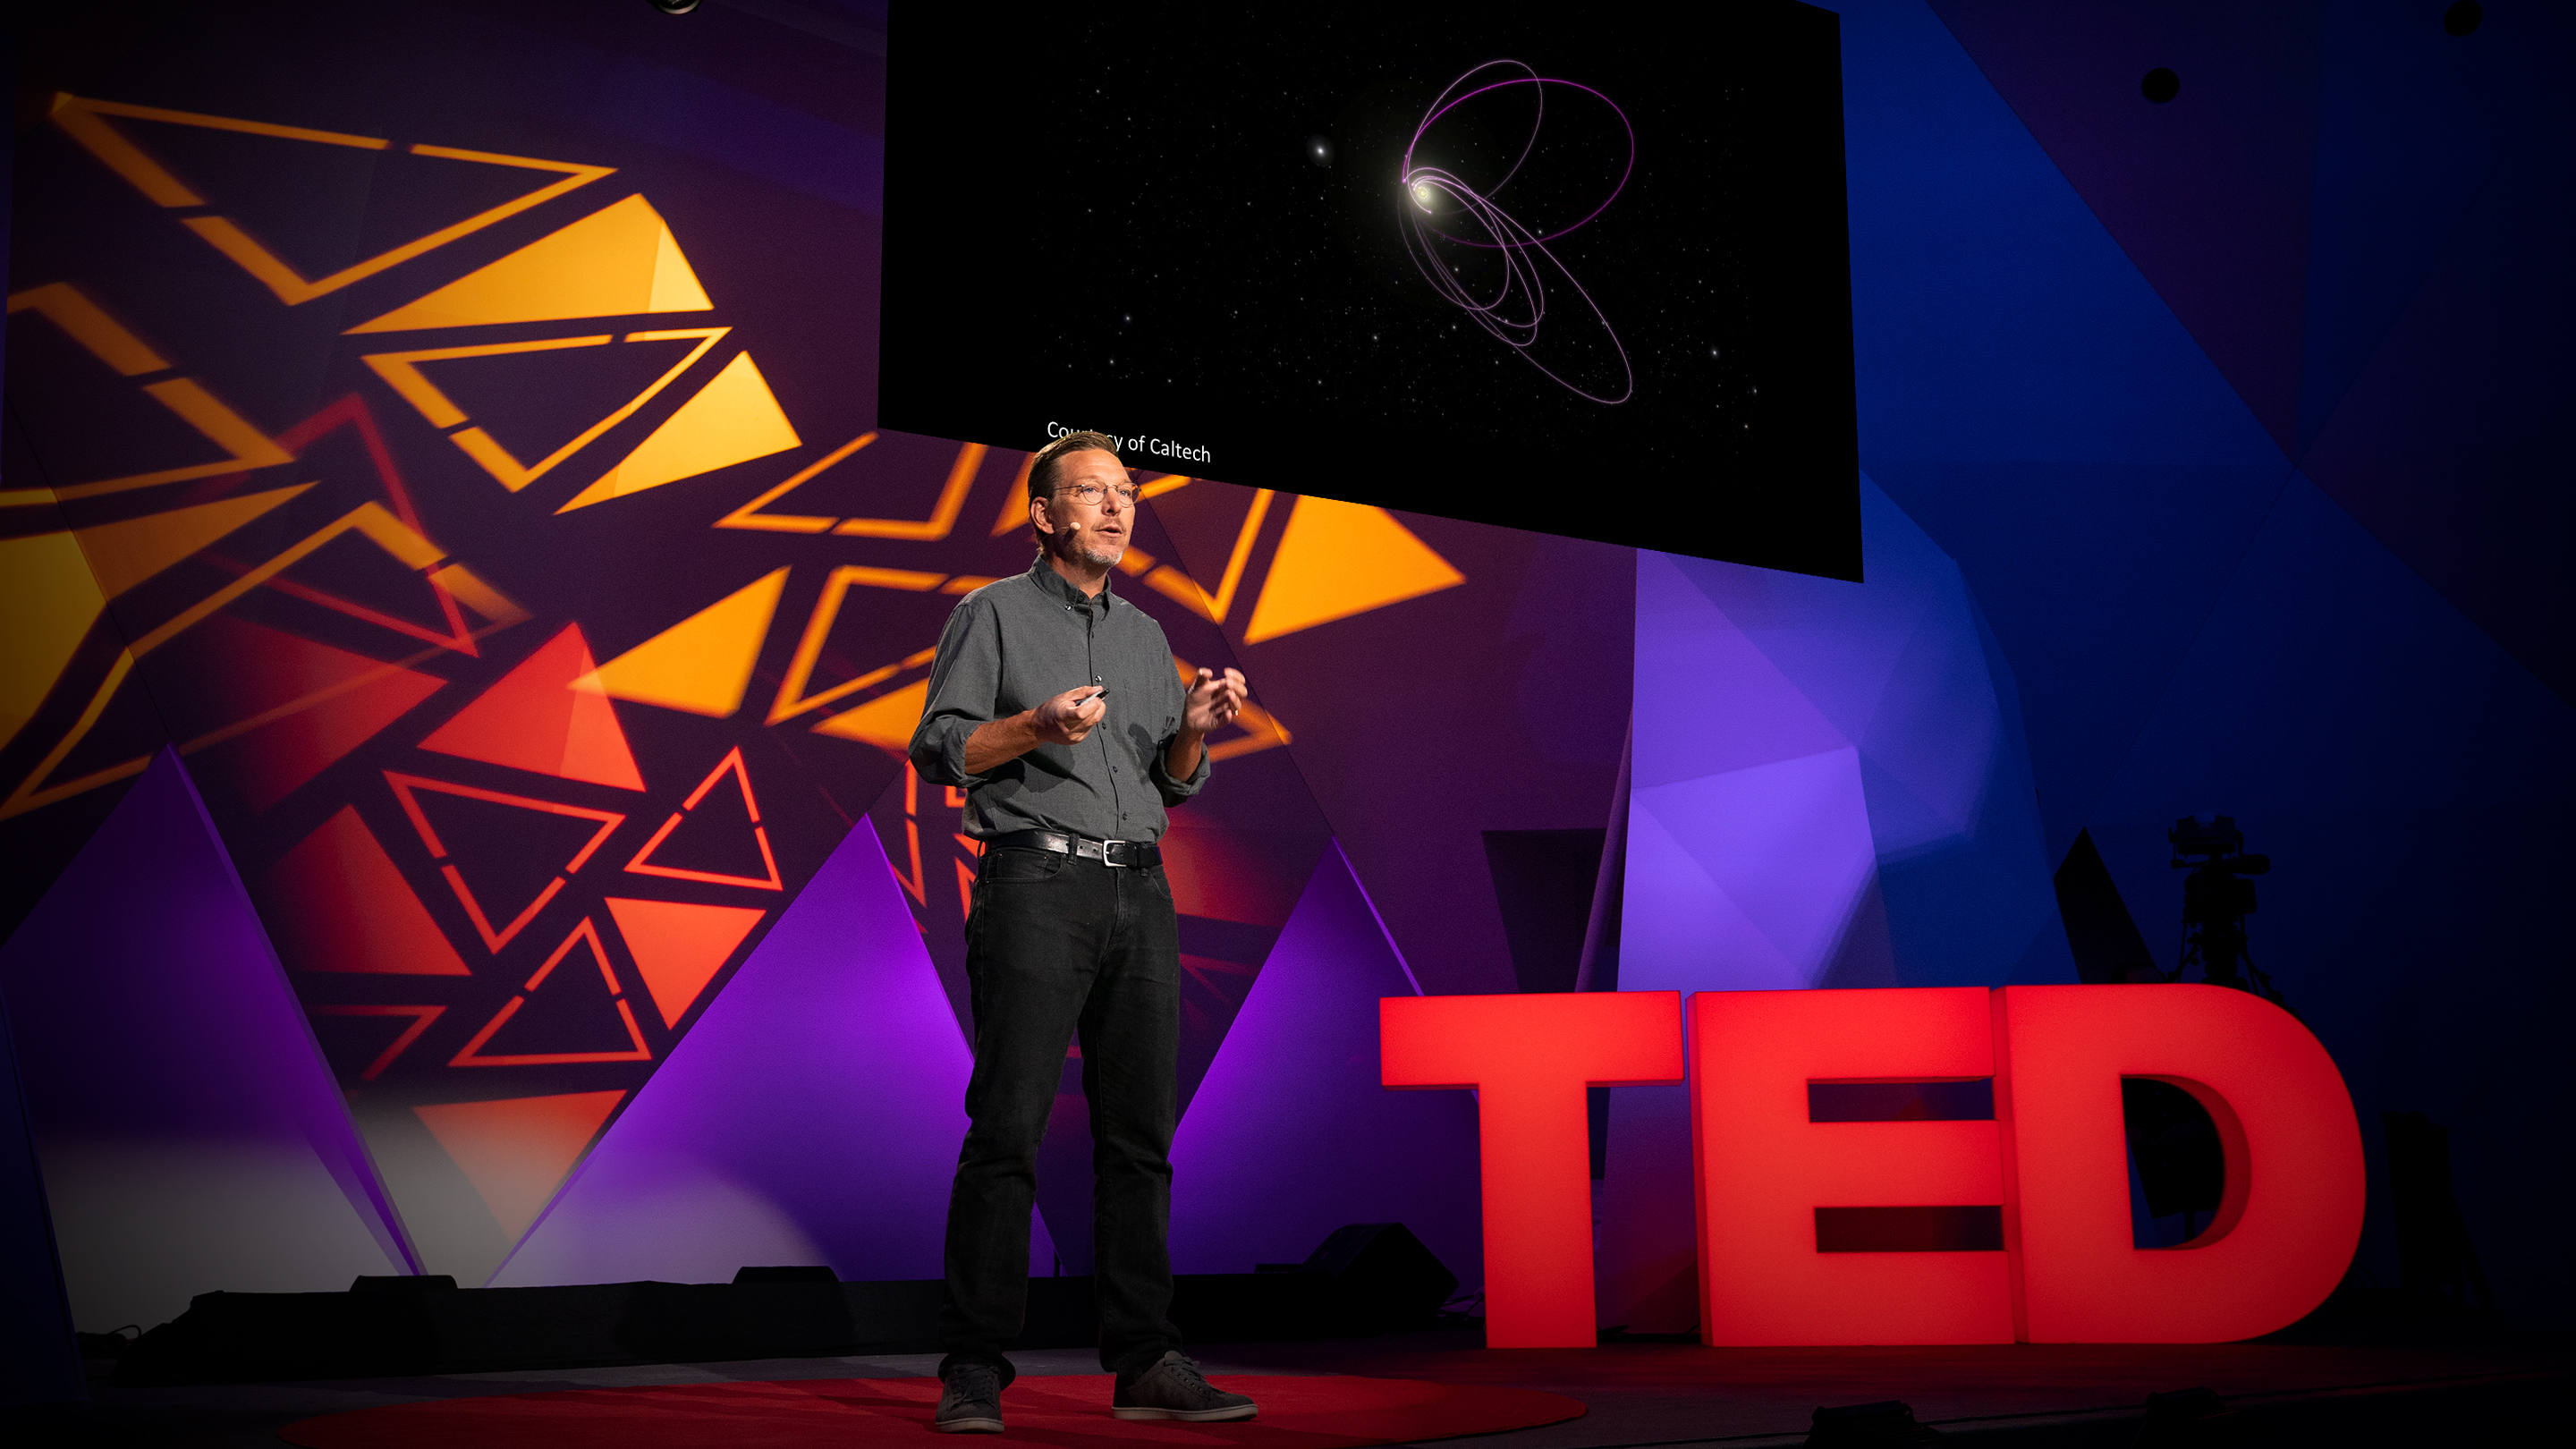 MikeBrown_2019 Ted Talk